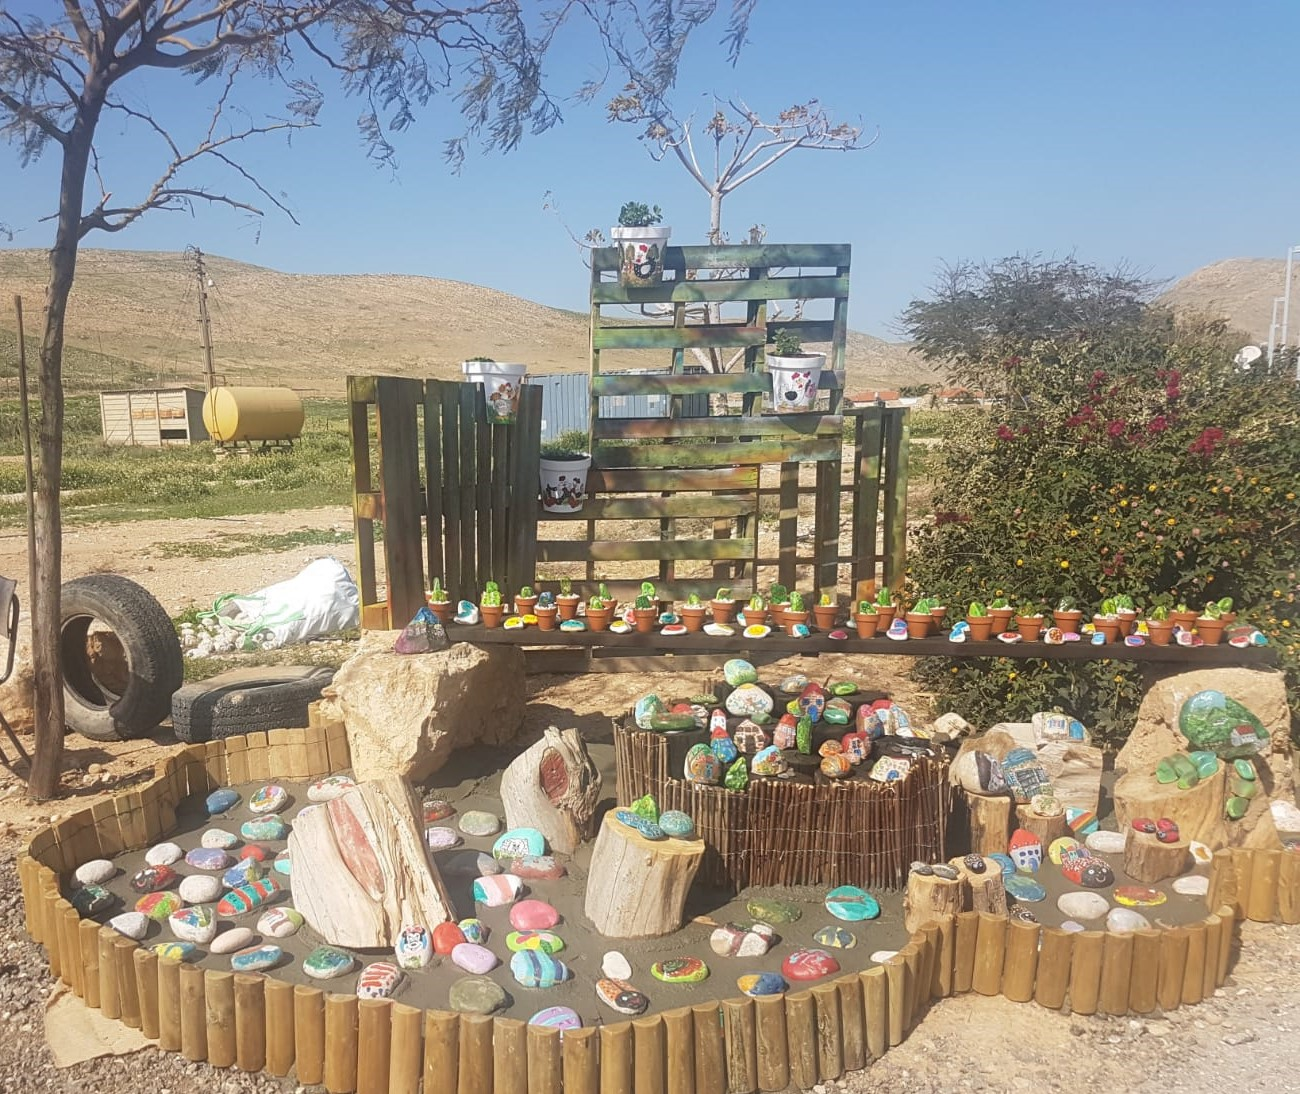 Children painted flowerpots and small stones to decorate Argaman's entrance.